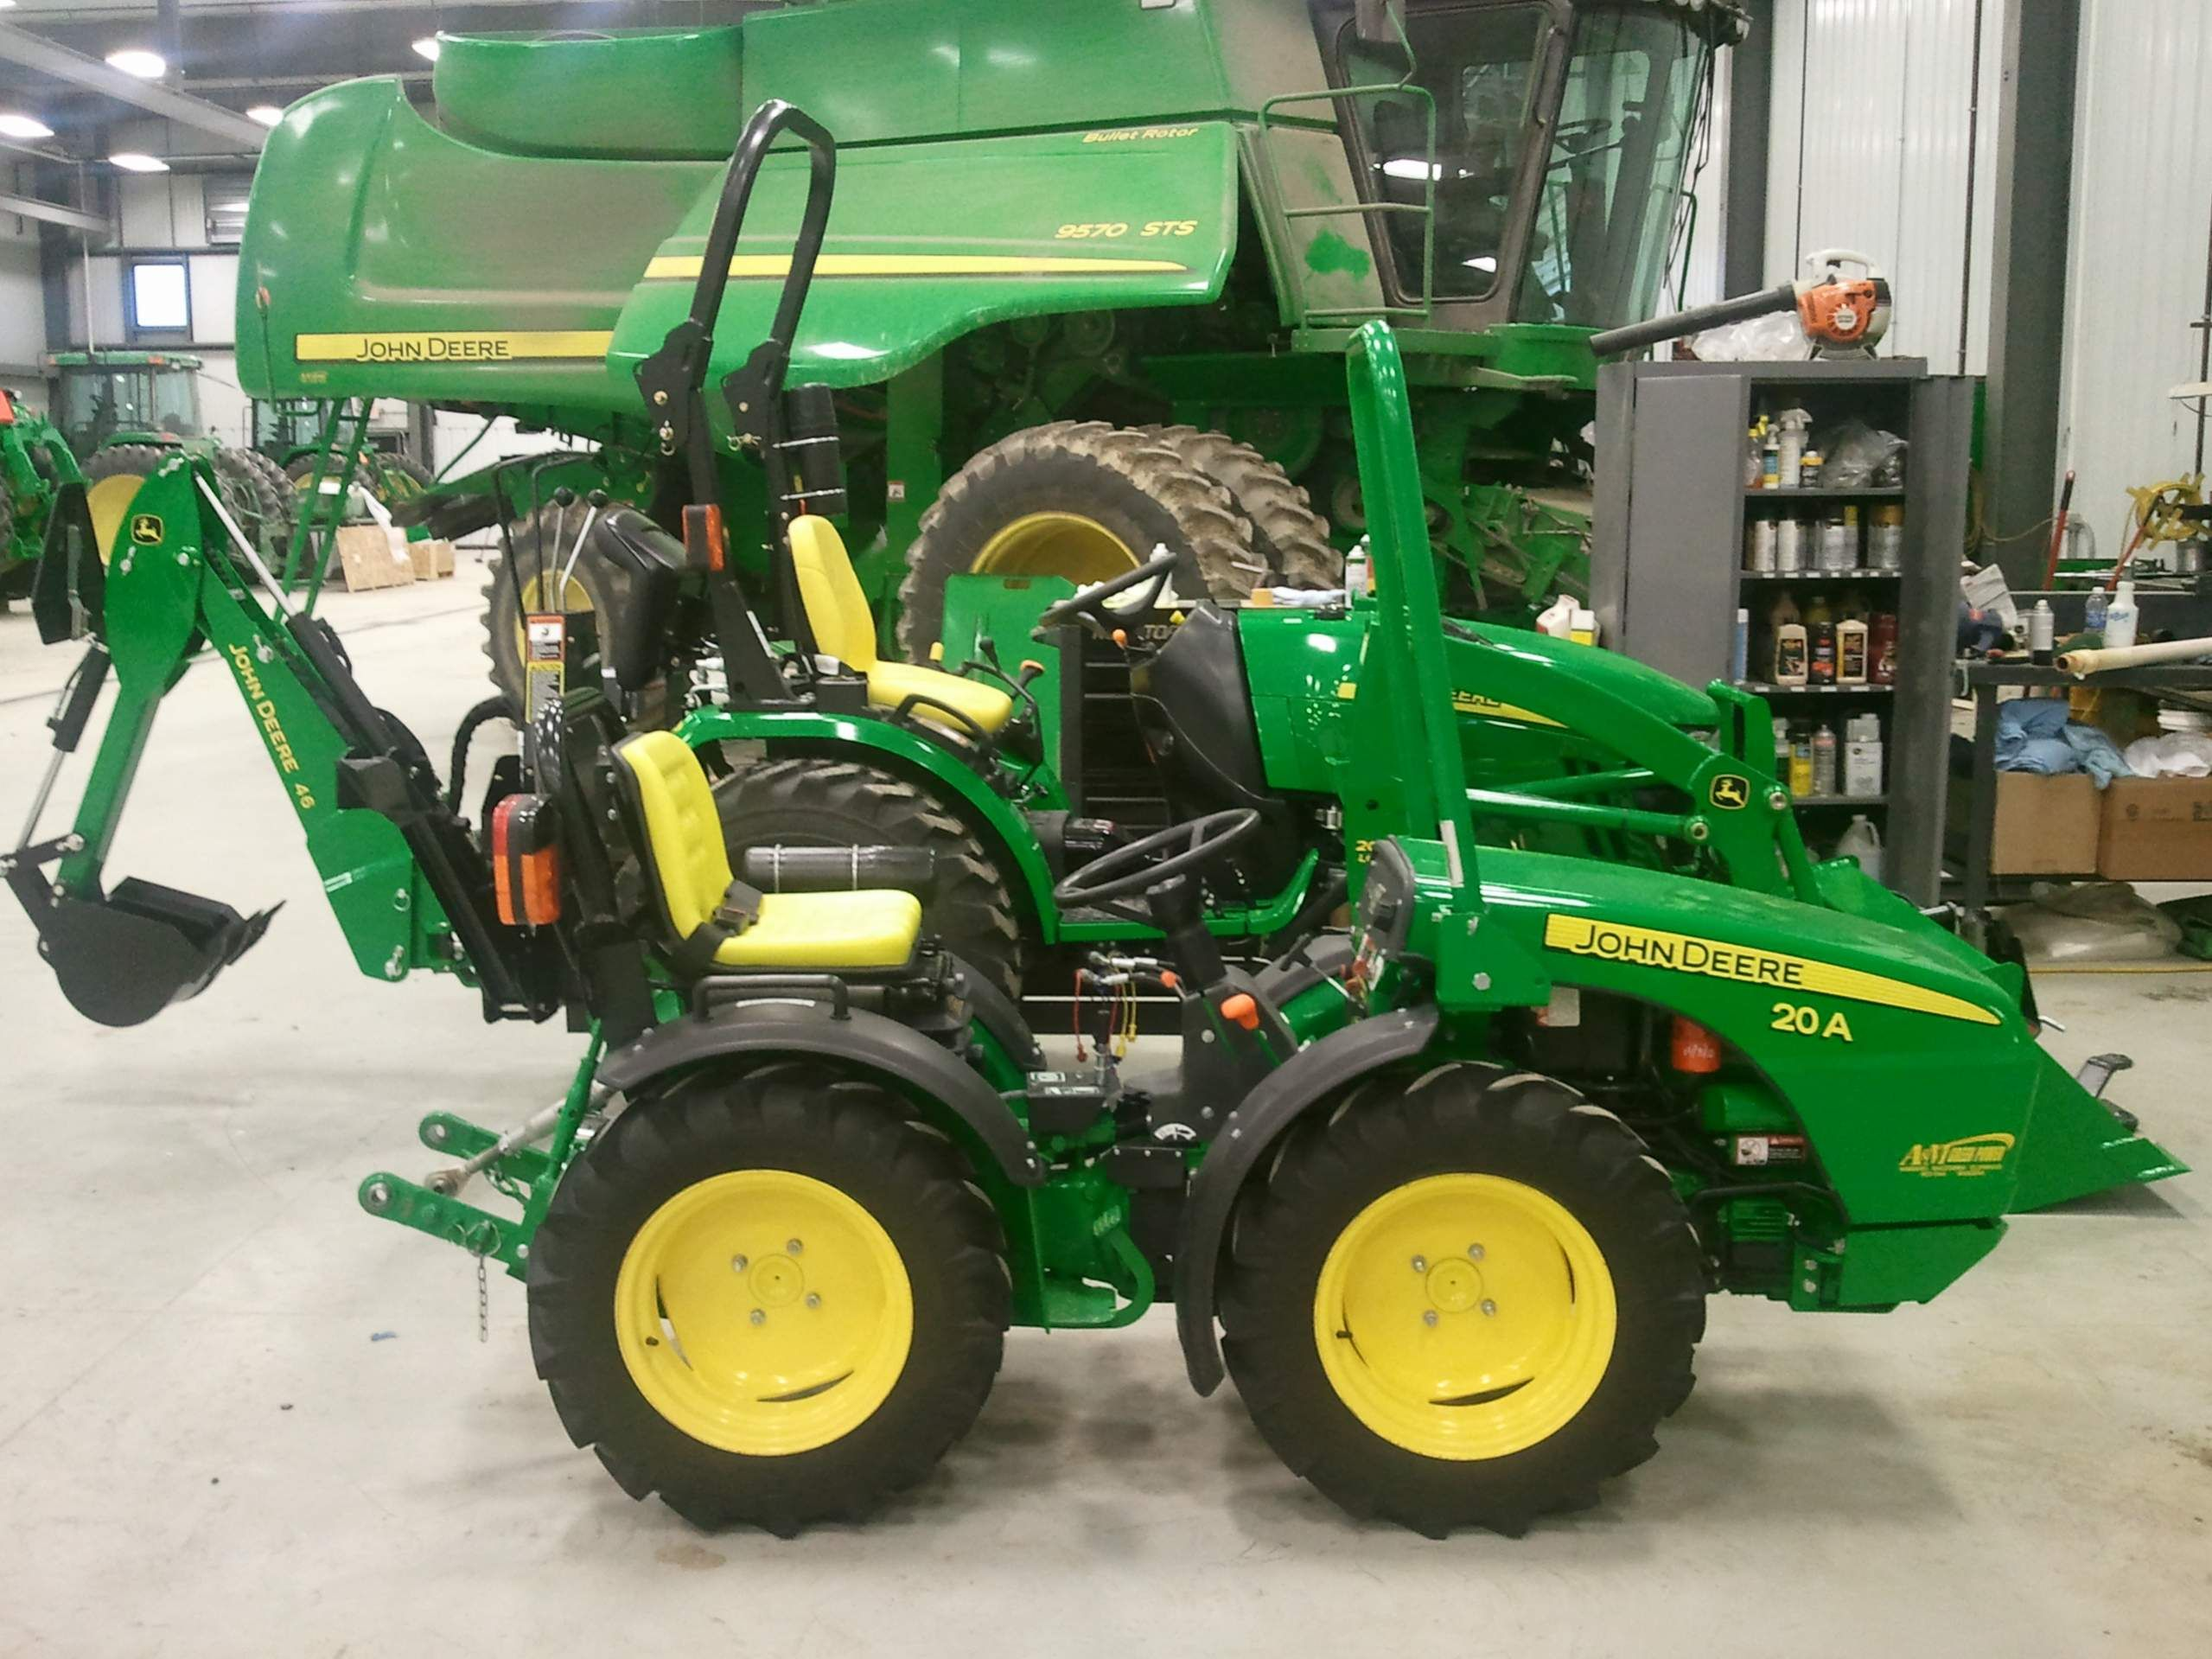 John Deere 20a Google Search Tractors Made In Italy